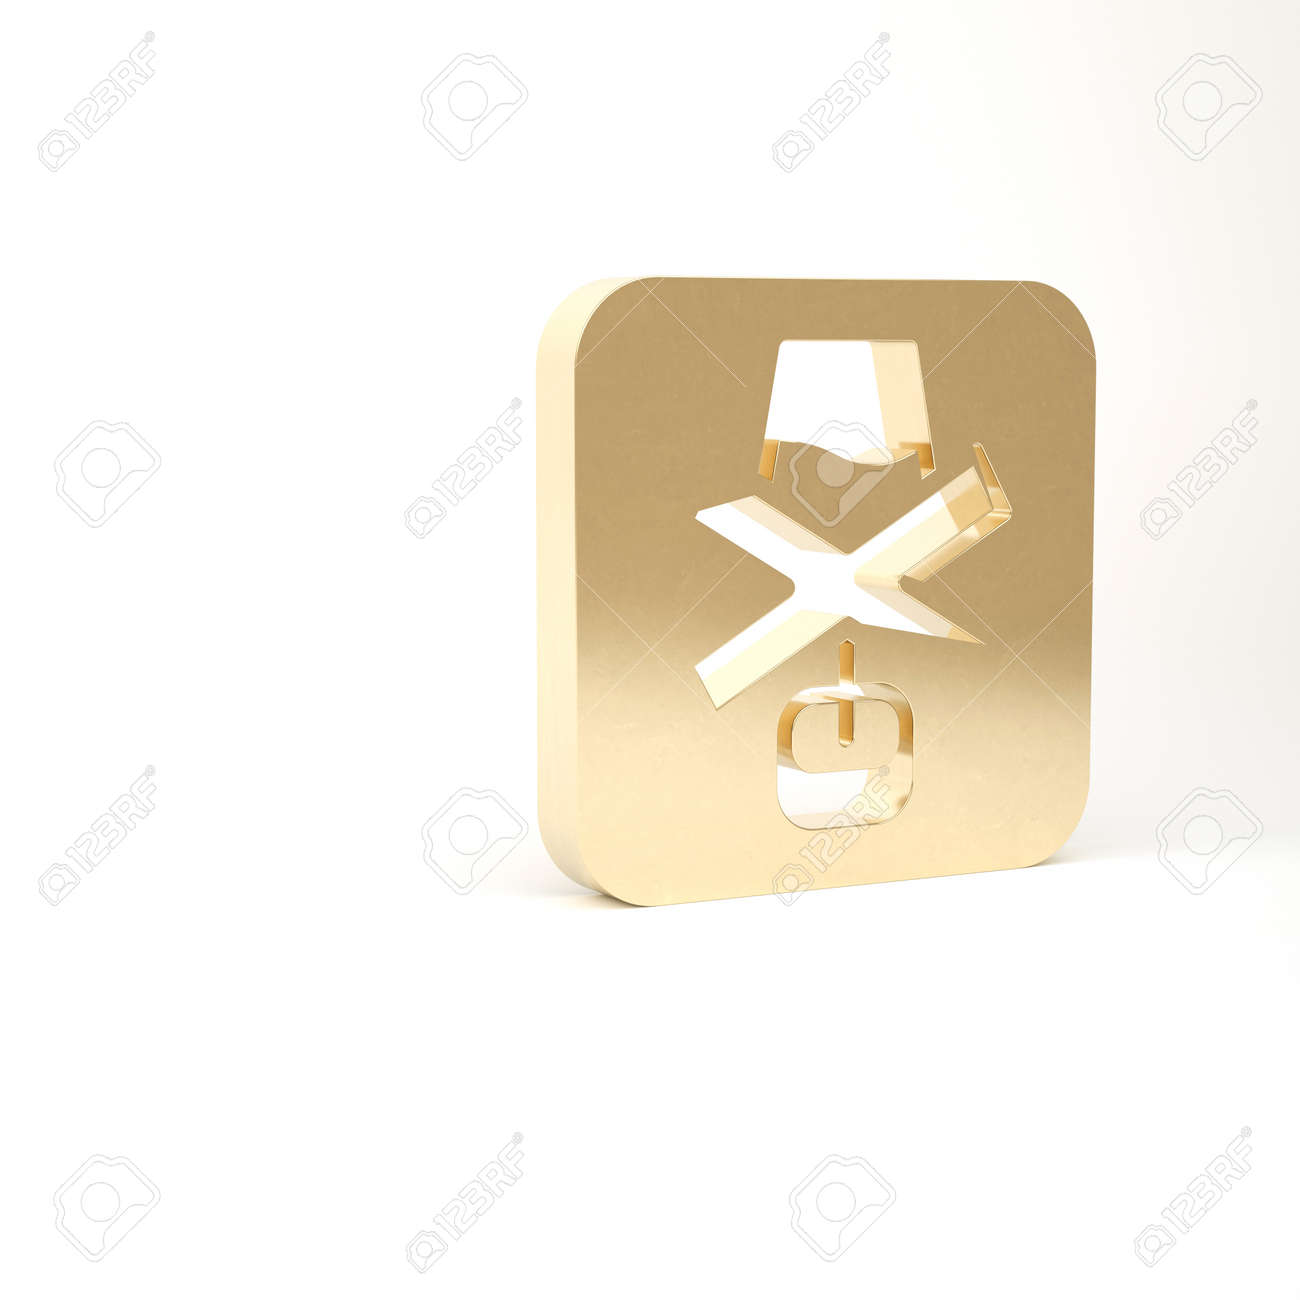 Gold No alcohol icon isolated on white background. Prohibiting alcohol beverages. Forbidden symbol with beer bottle glass. 3d illustration 3D render - 169797737